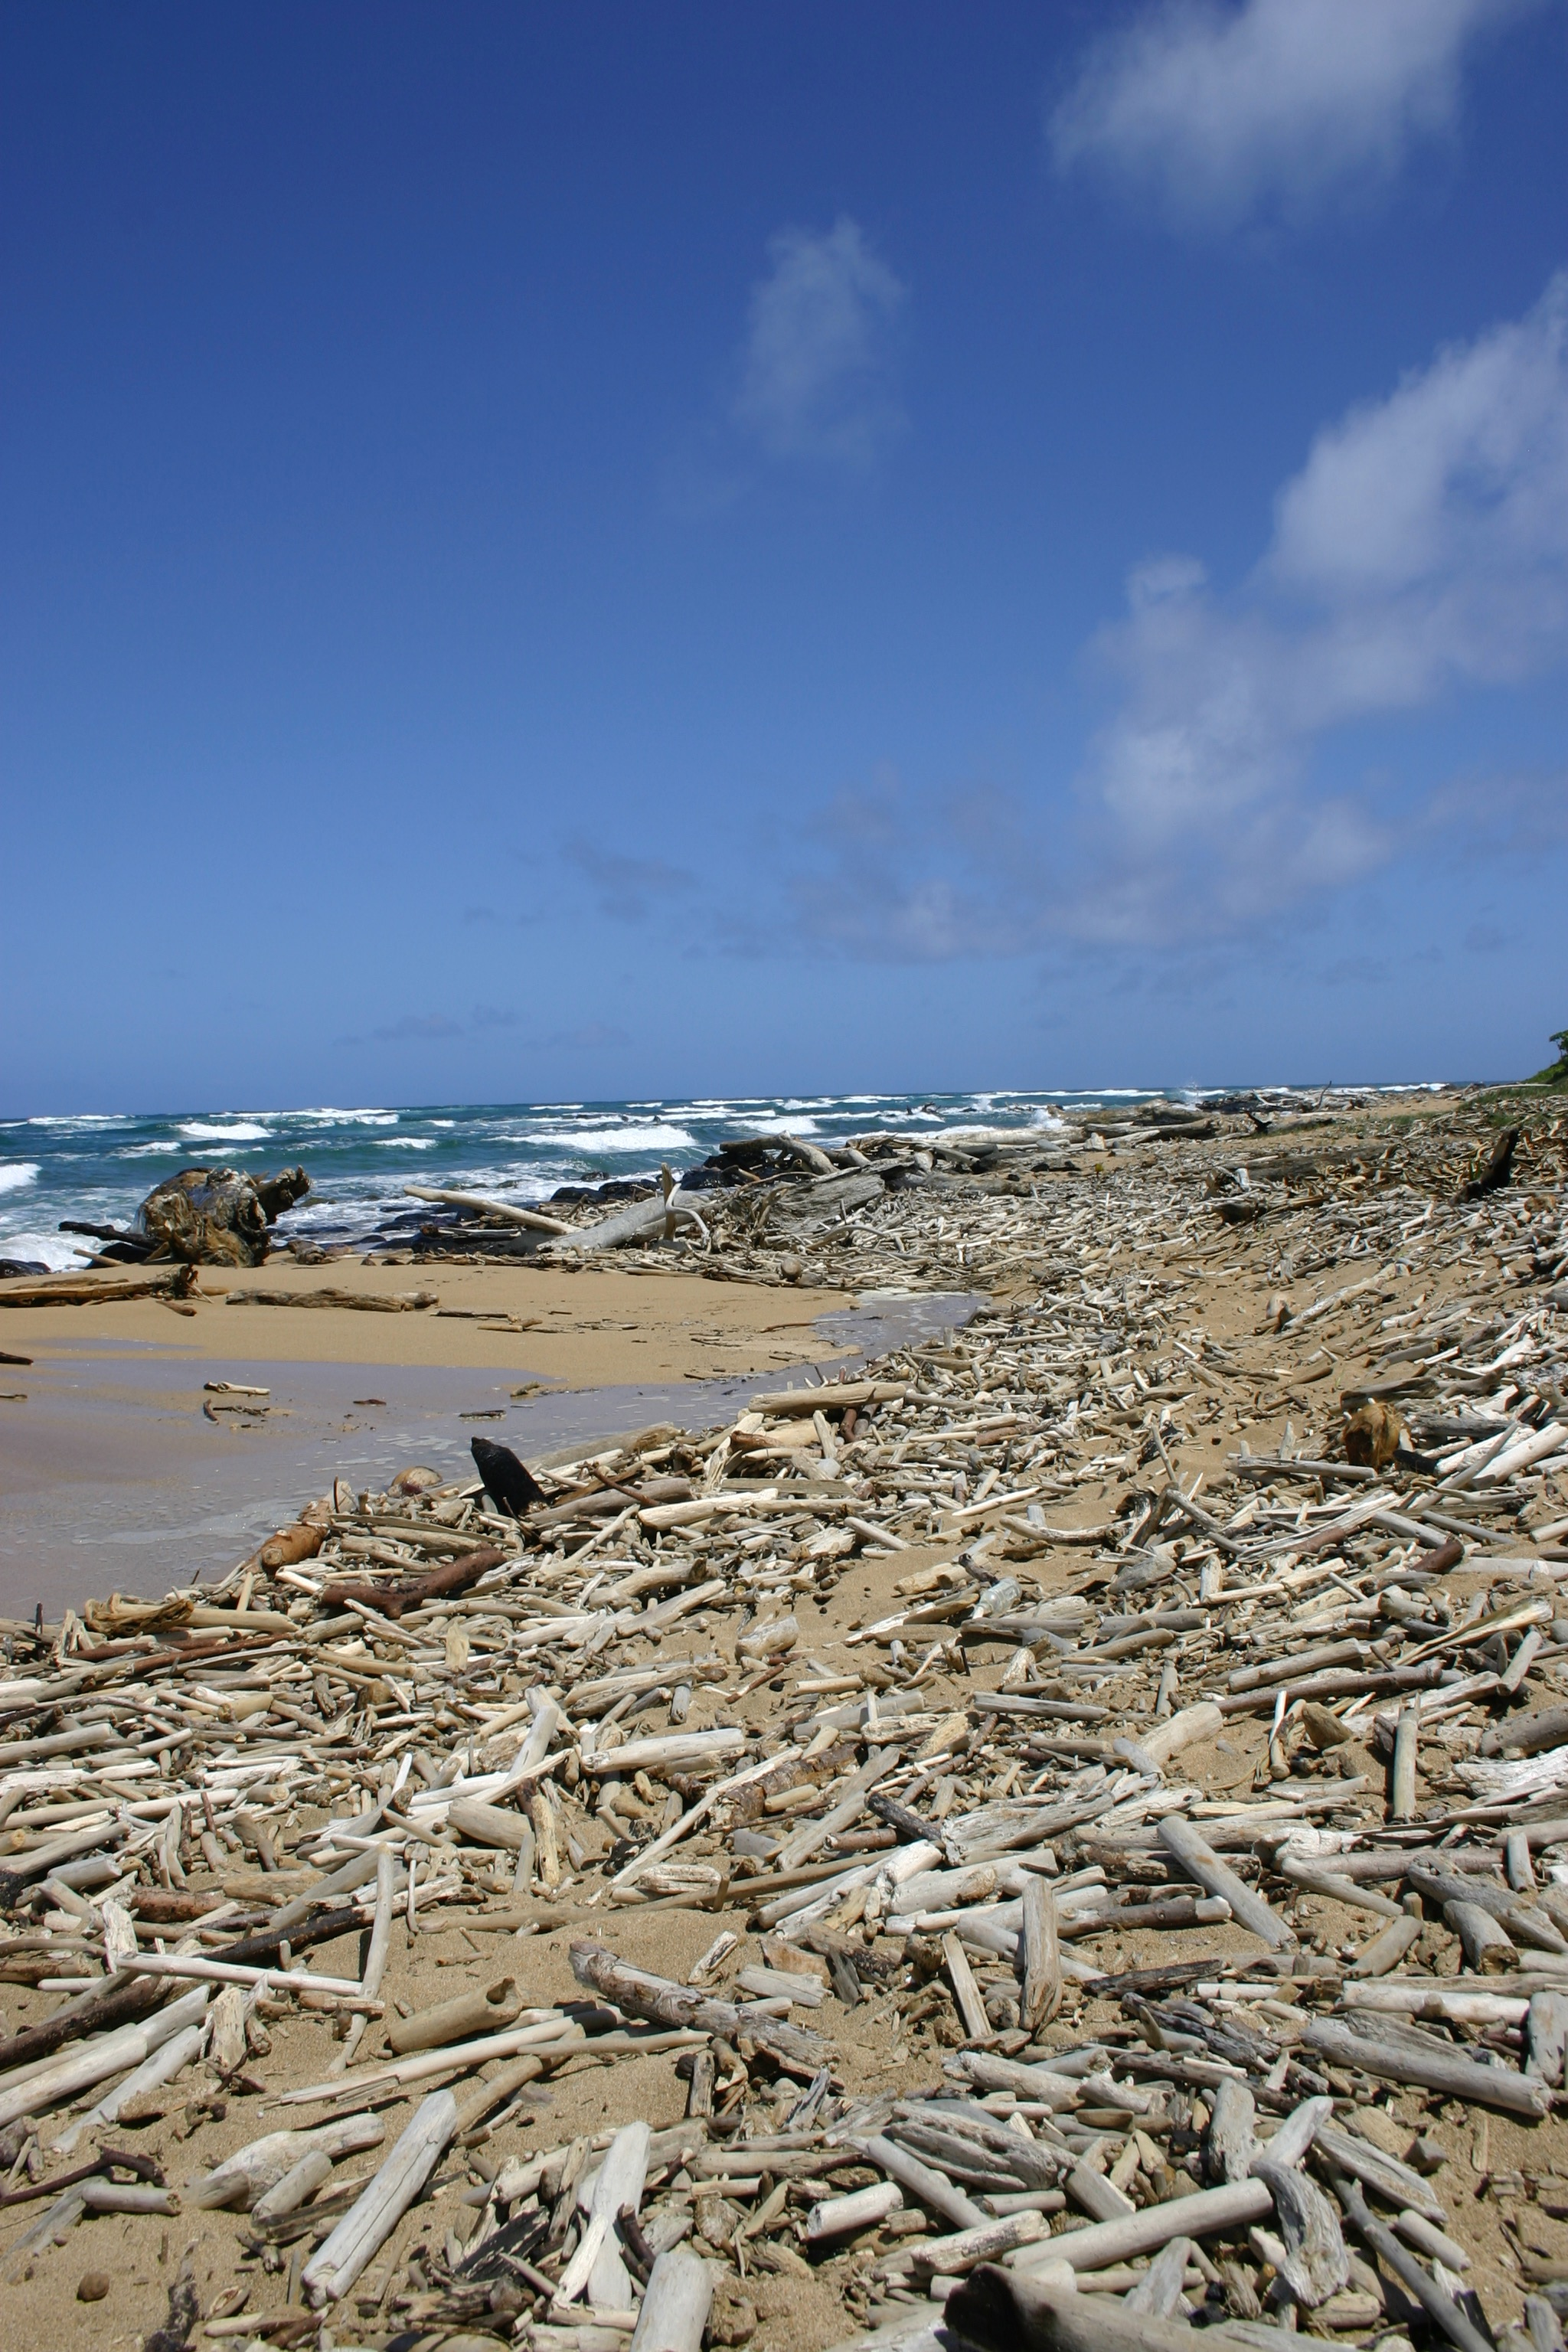 Driftwood litters the beach near the mouth of the Wailua River, where it meets the Pacific Ocean.